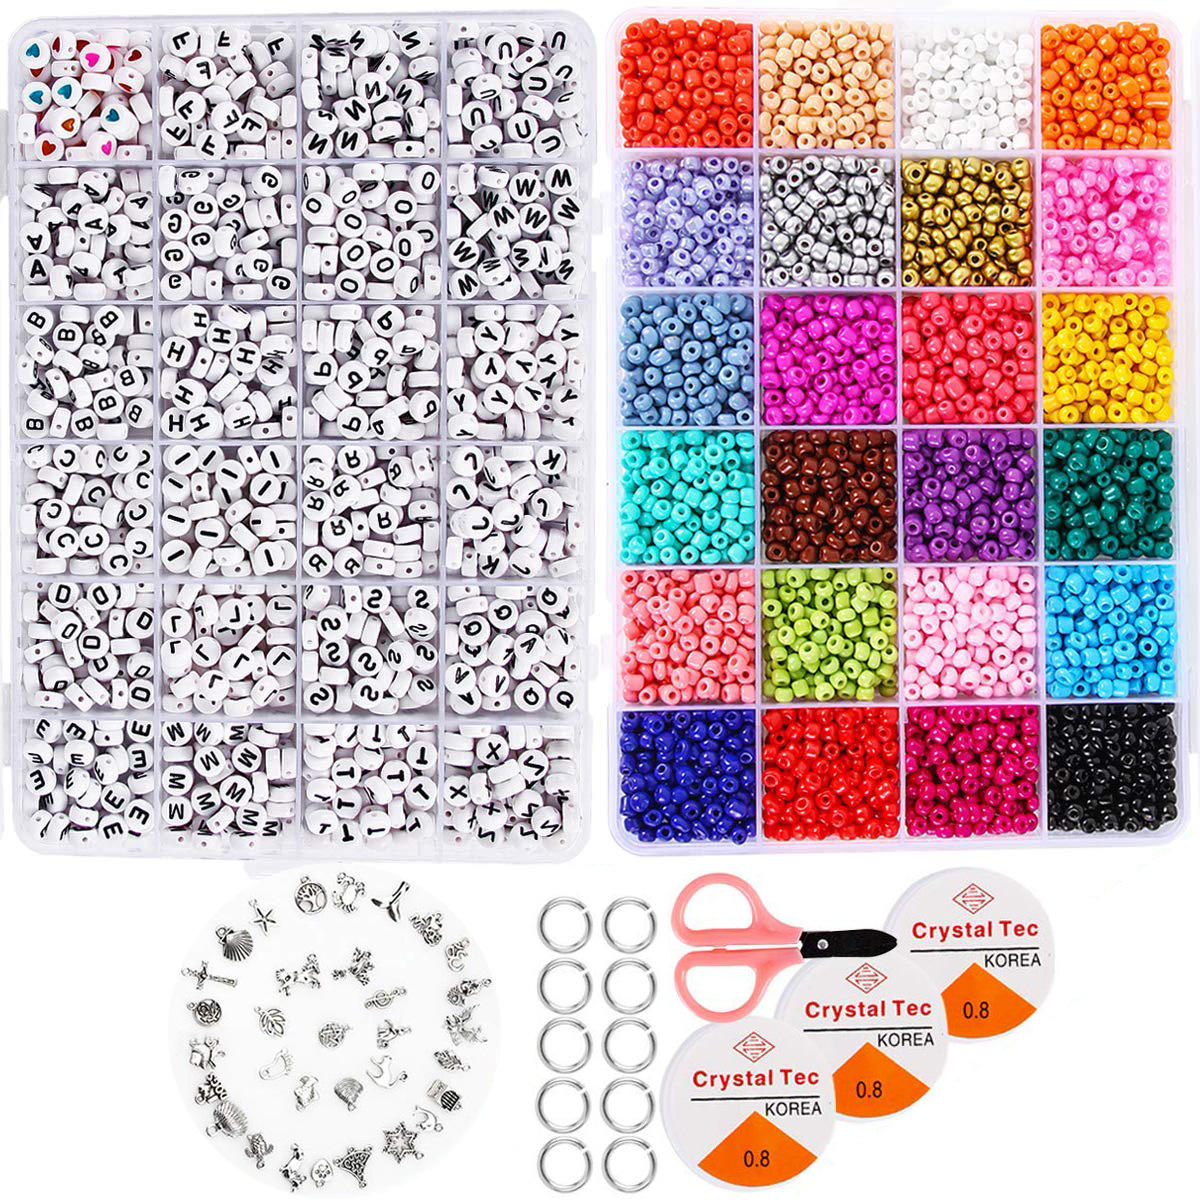 Glass Seed Beads Alphabet letter beads Glass Beads for Jewelry Making DIY Set Kit